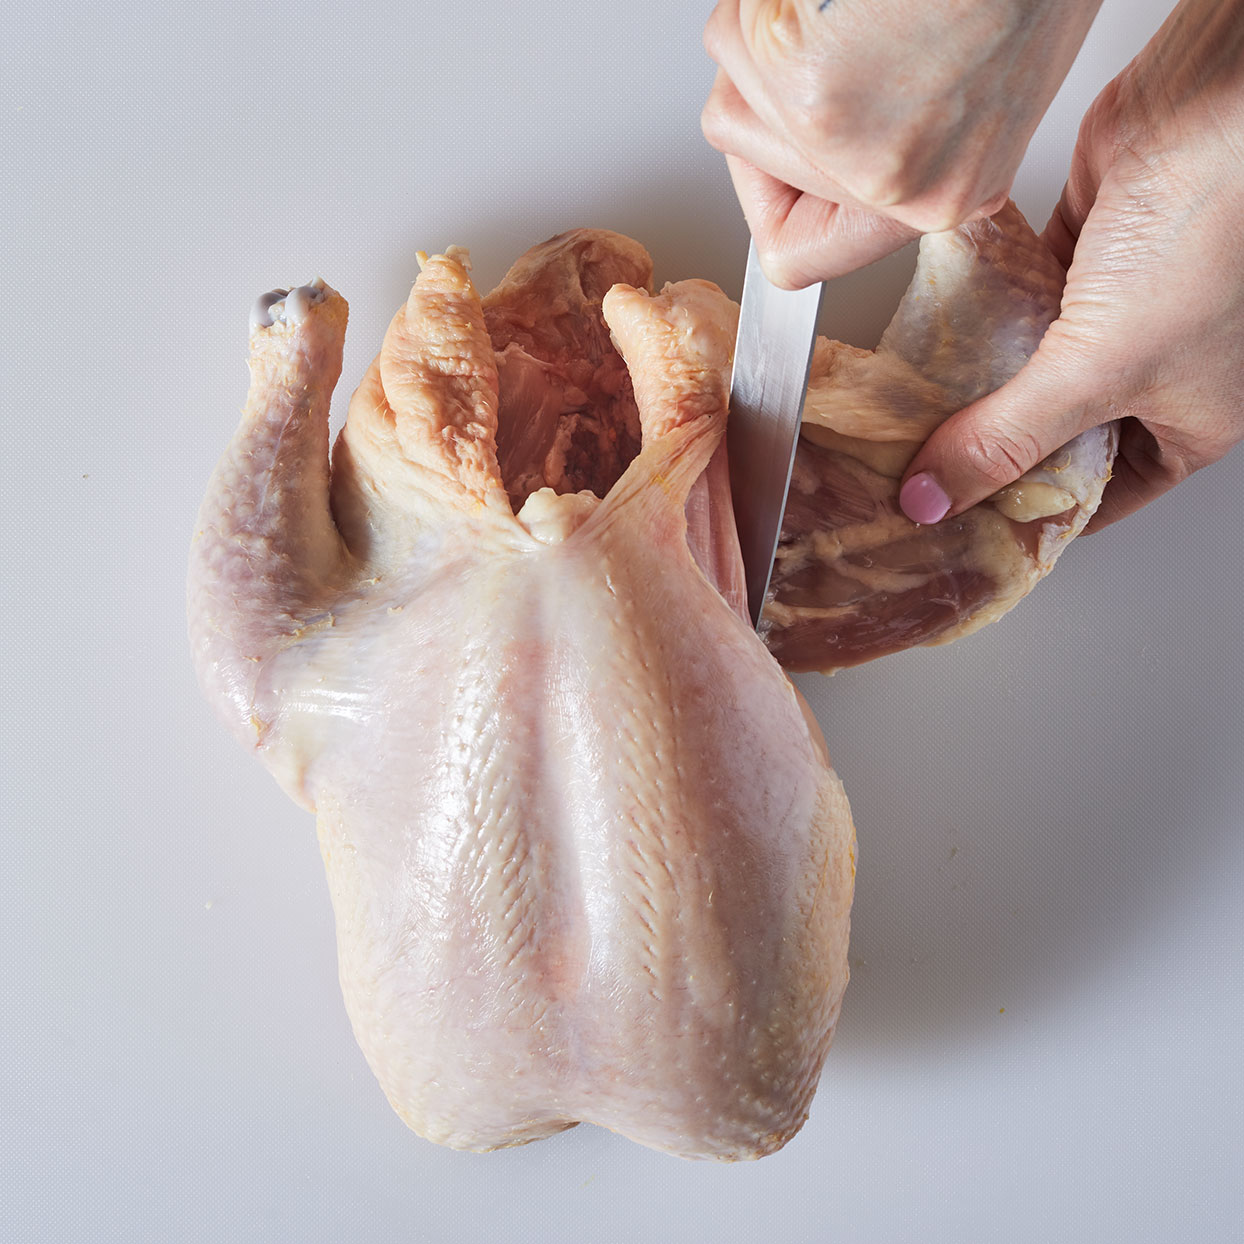 How to cut up a whole chicken step 3